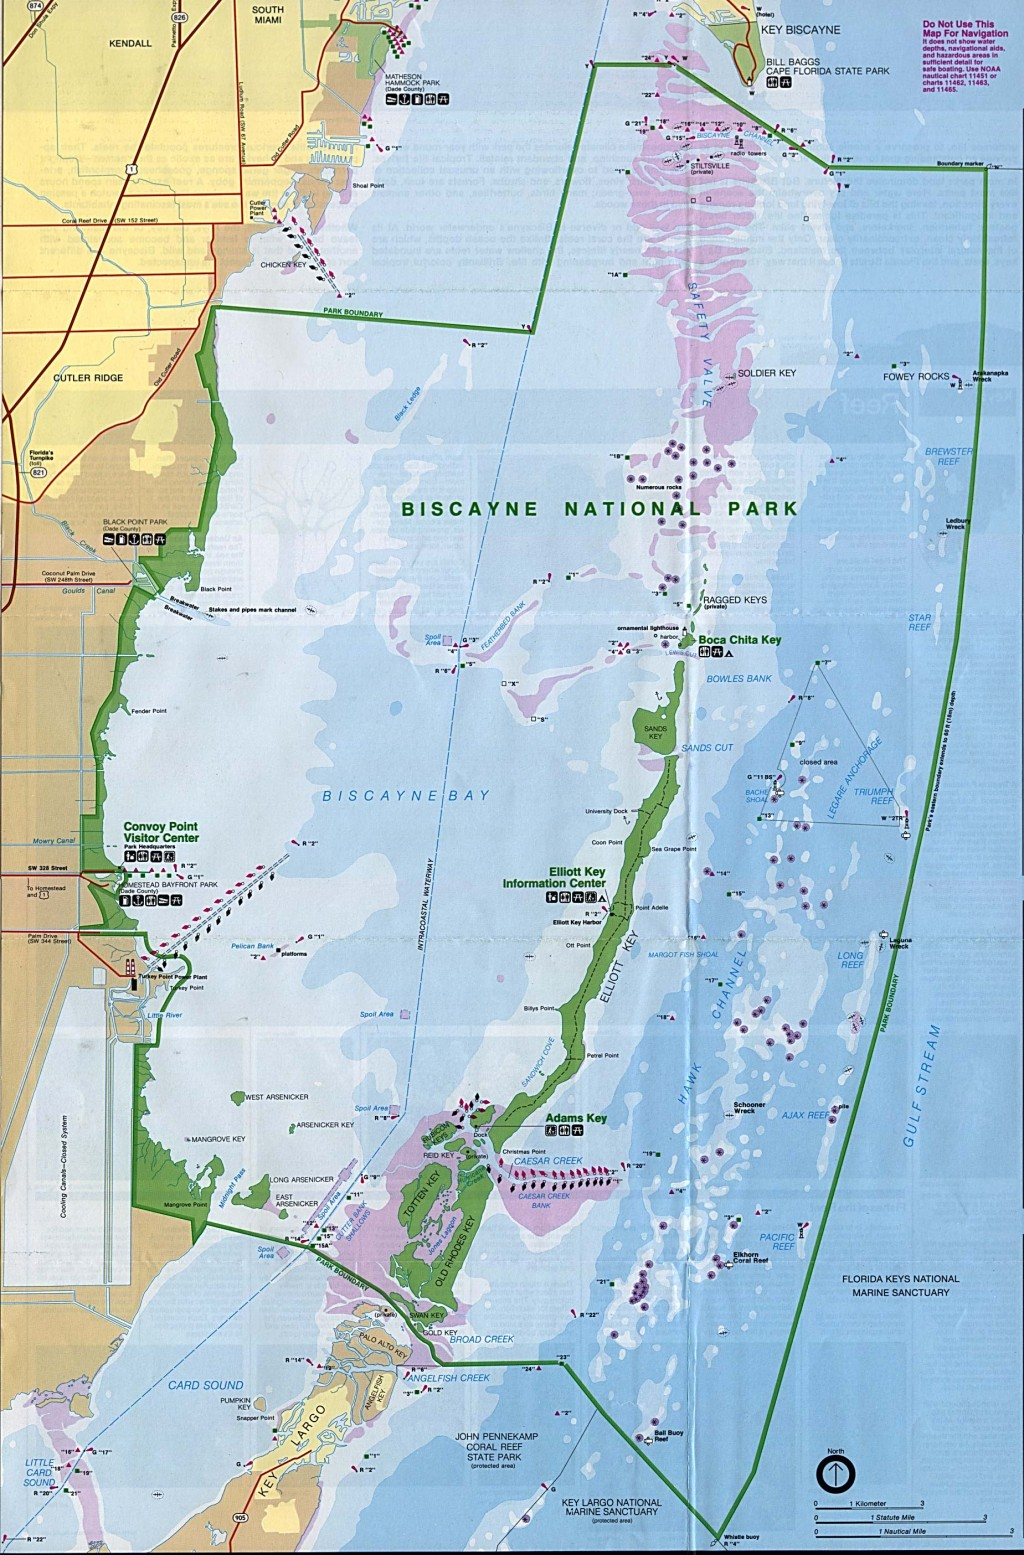 004 Biscayne National Park Map Essay Wonderful Large